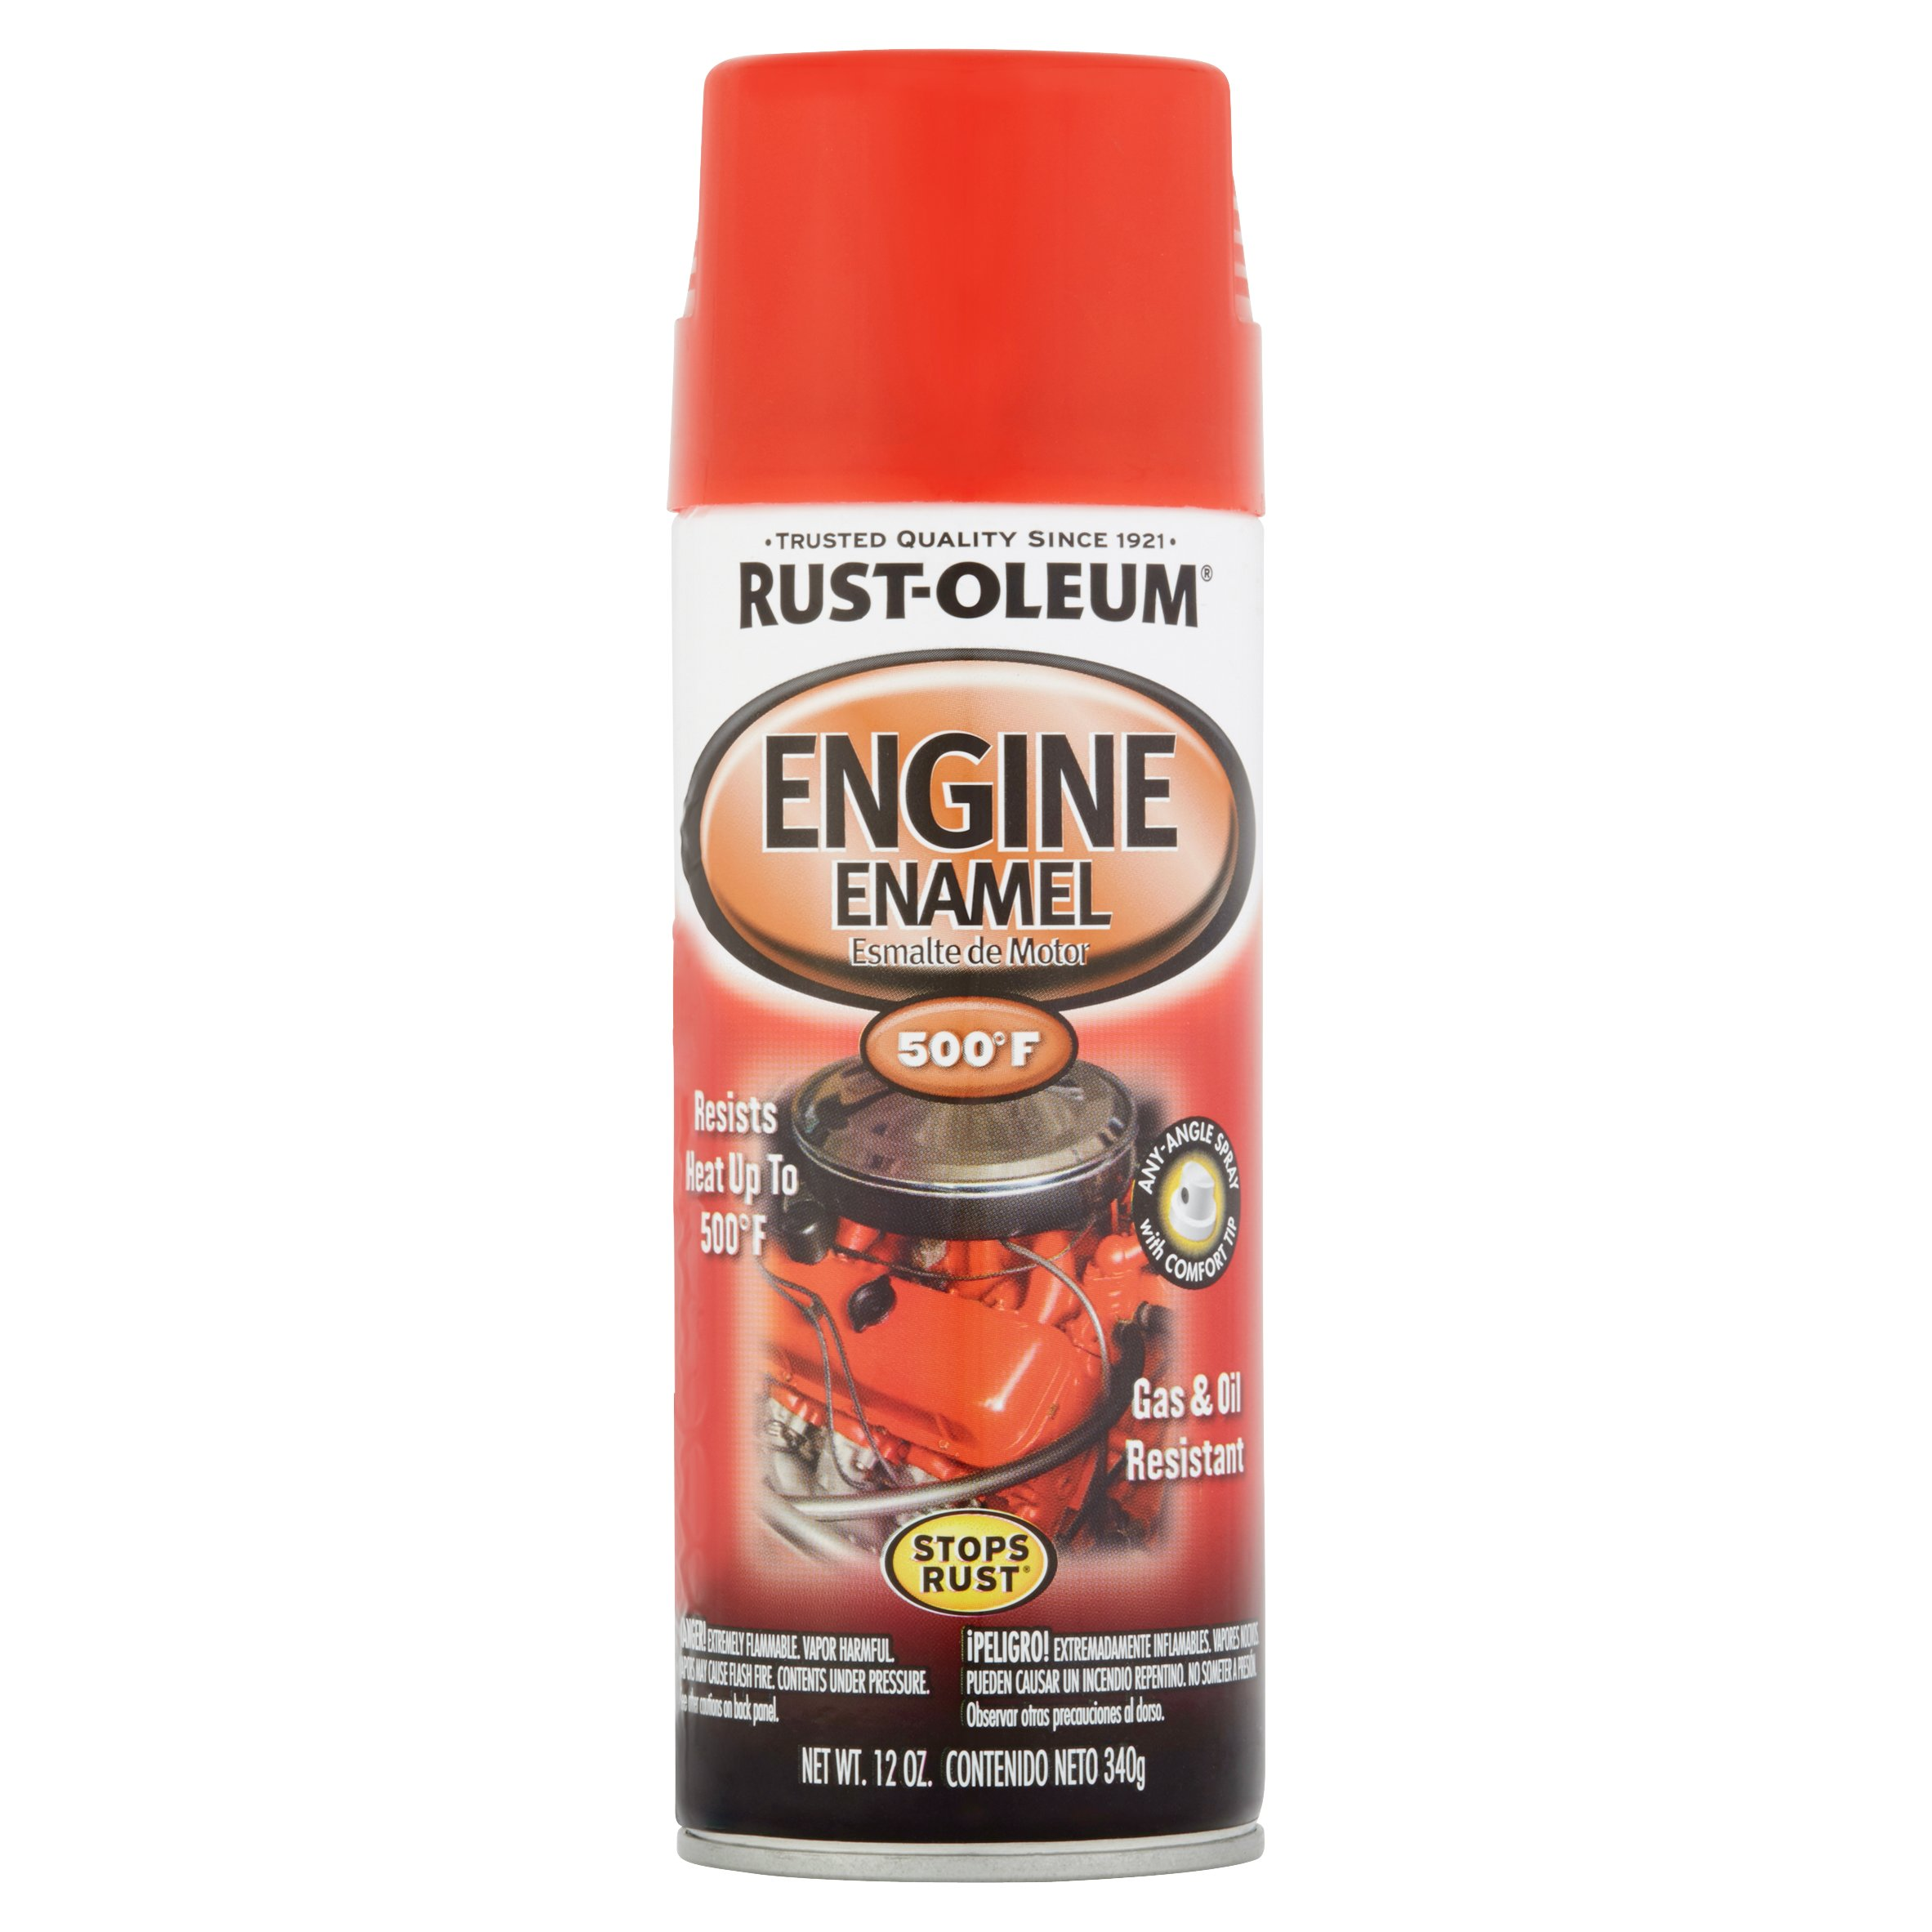 Rust-Oleum Gas & Oil Resistant Engine Enamel, 12 oz